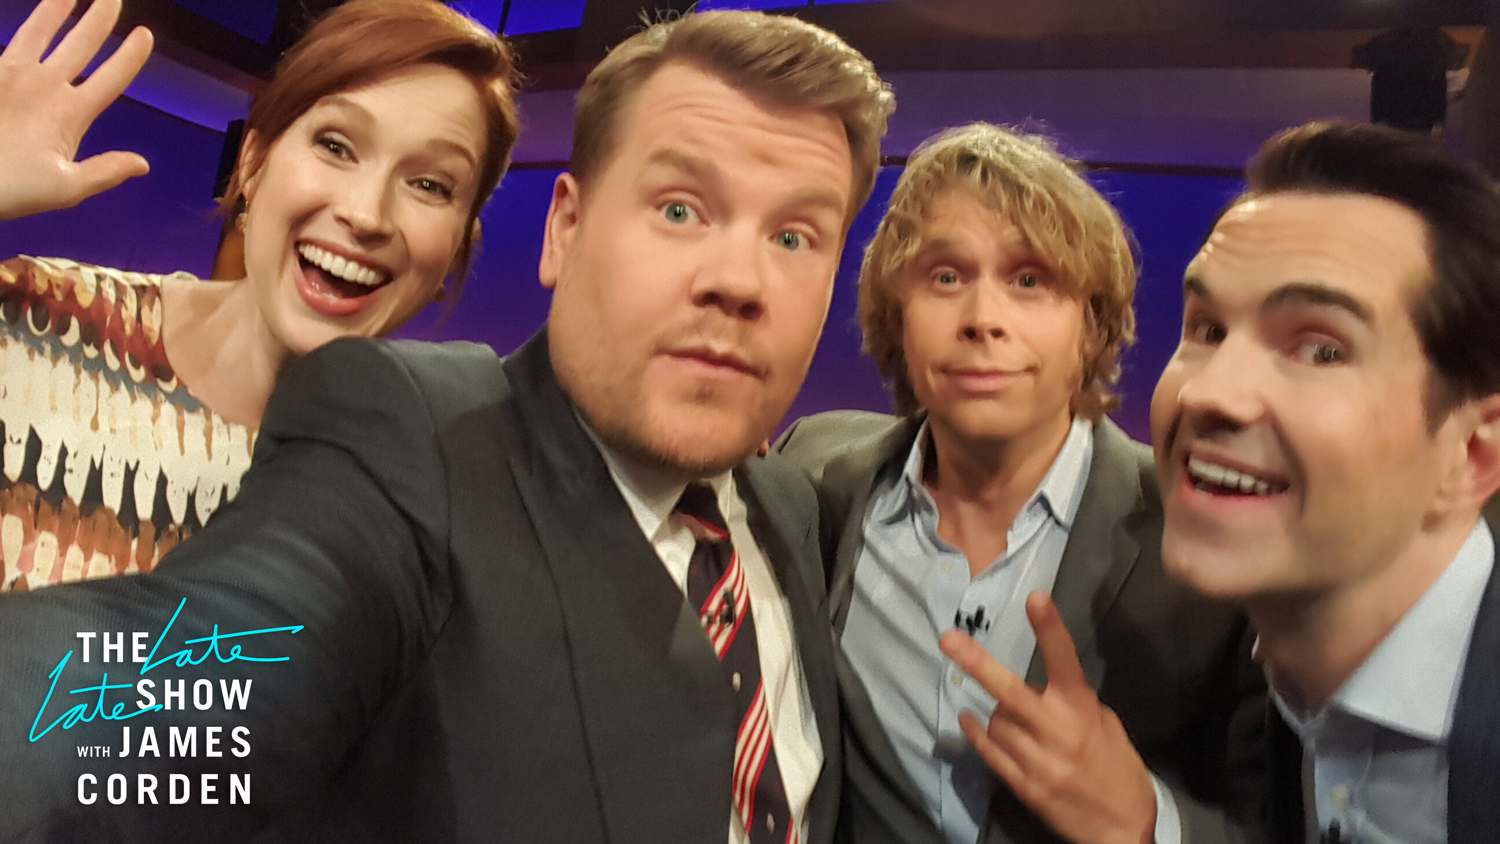 Ellie Kemper, Eric Christian Olsen and Jimmy Carr